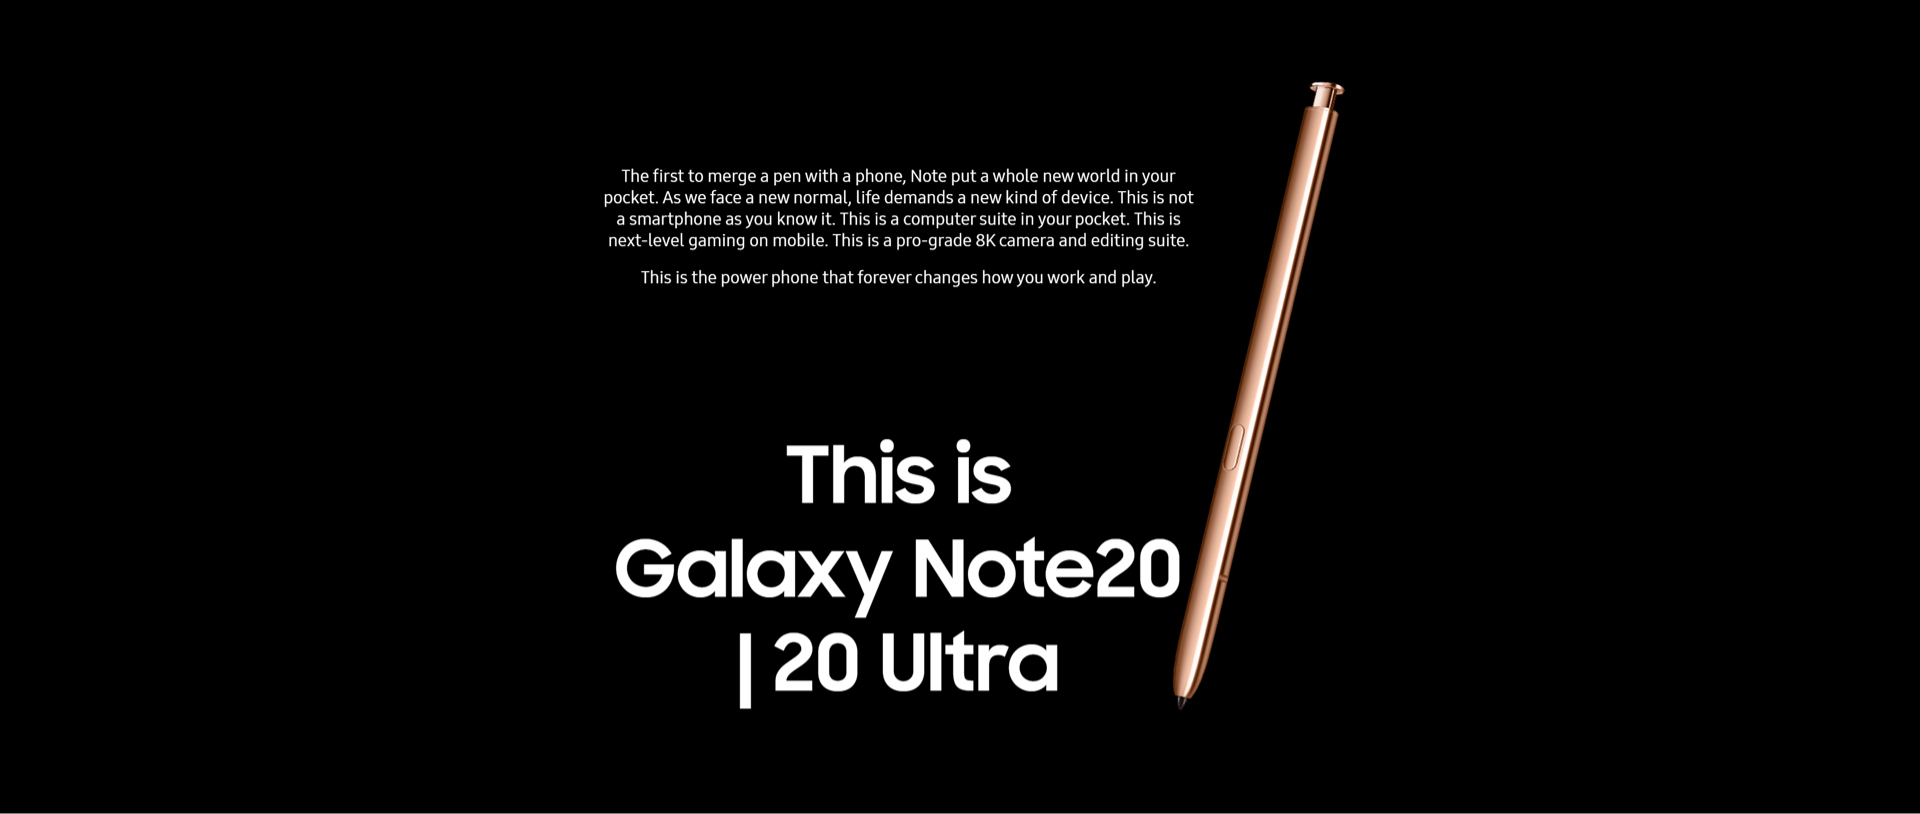 Note 20 Ultra price